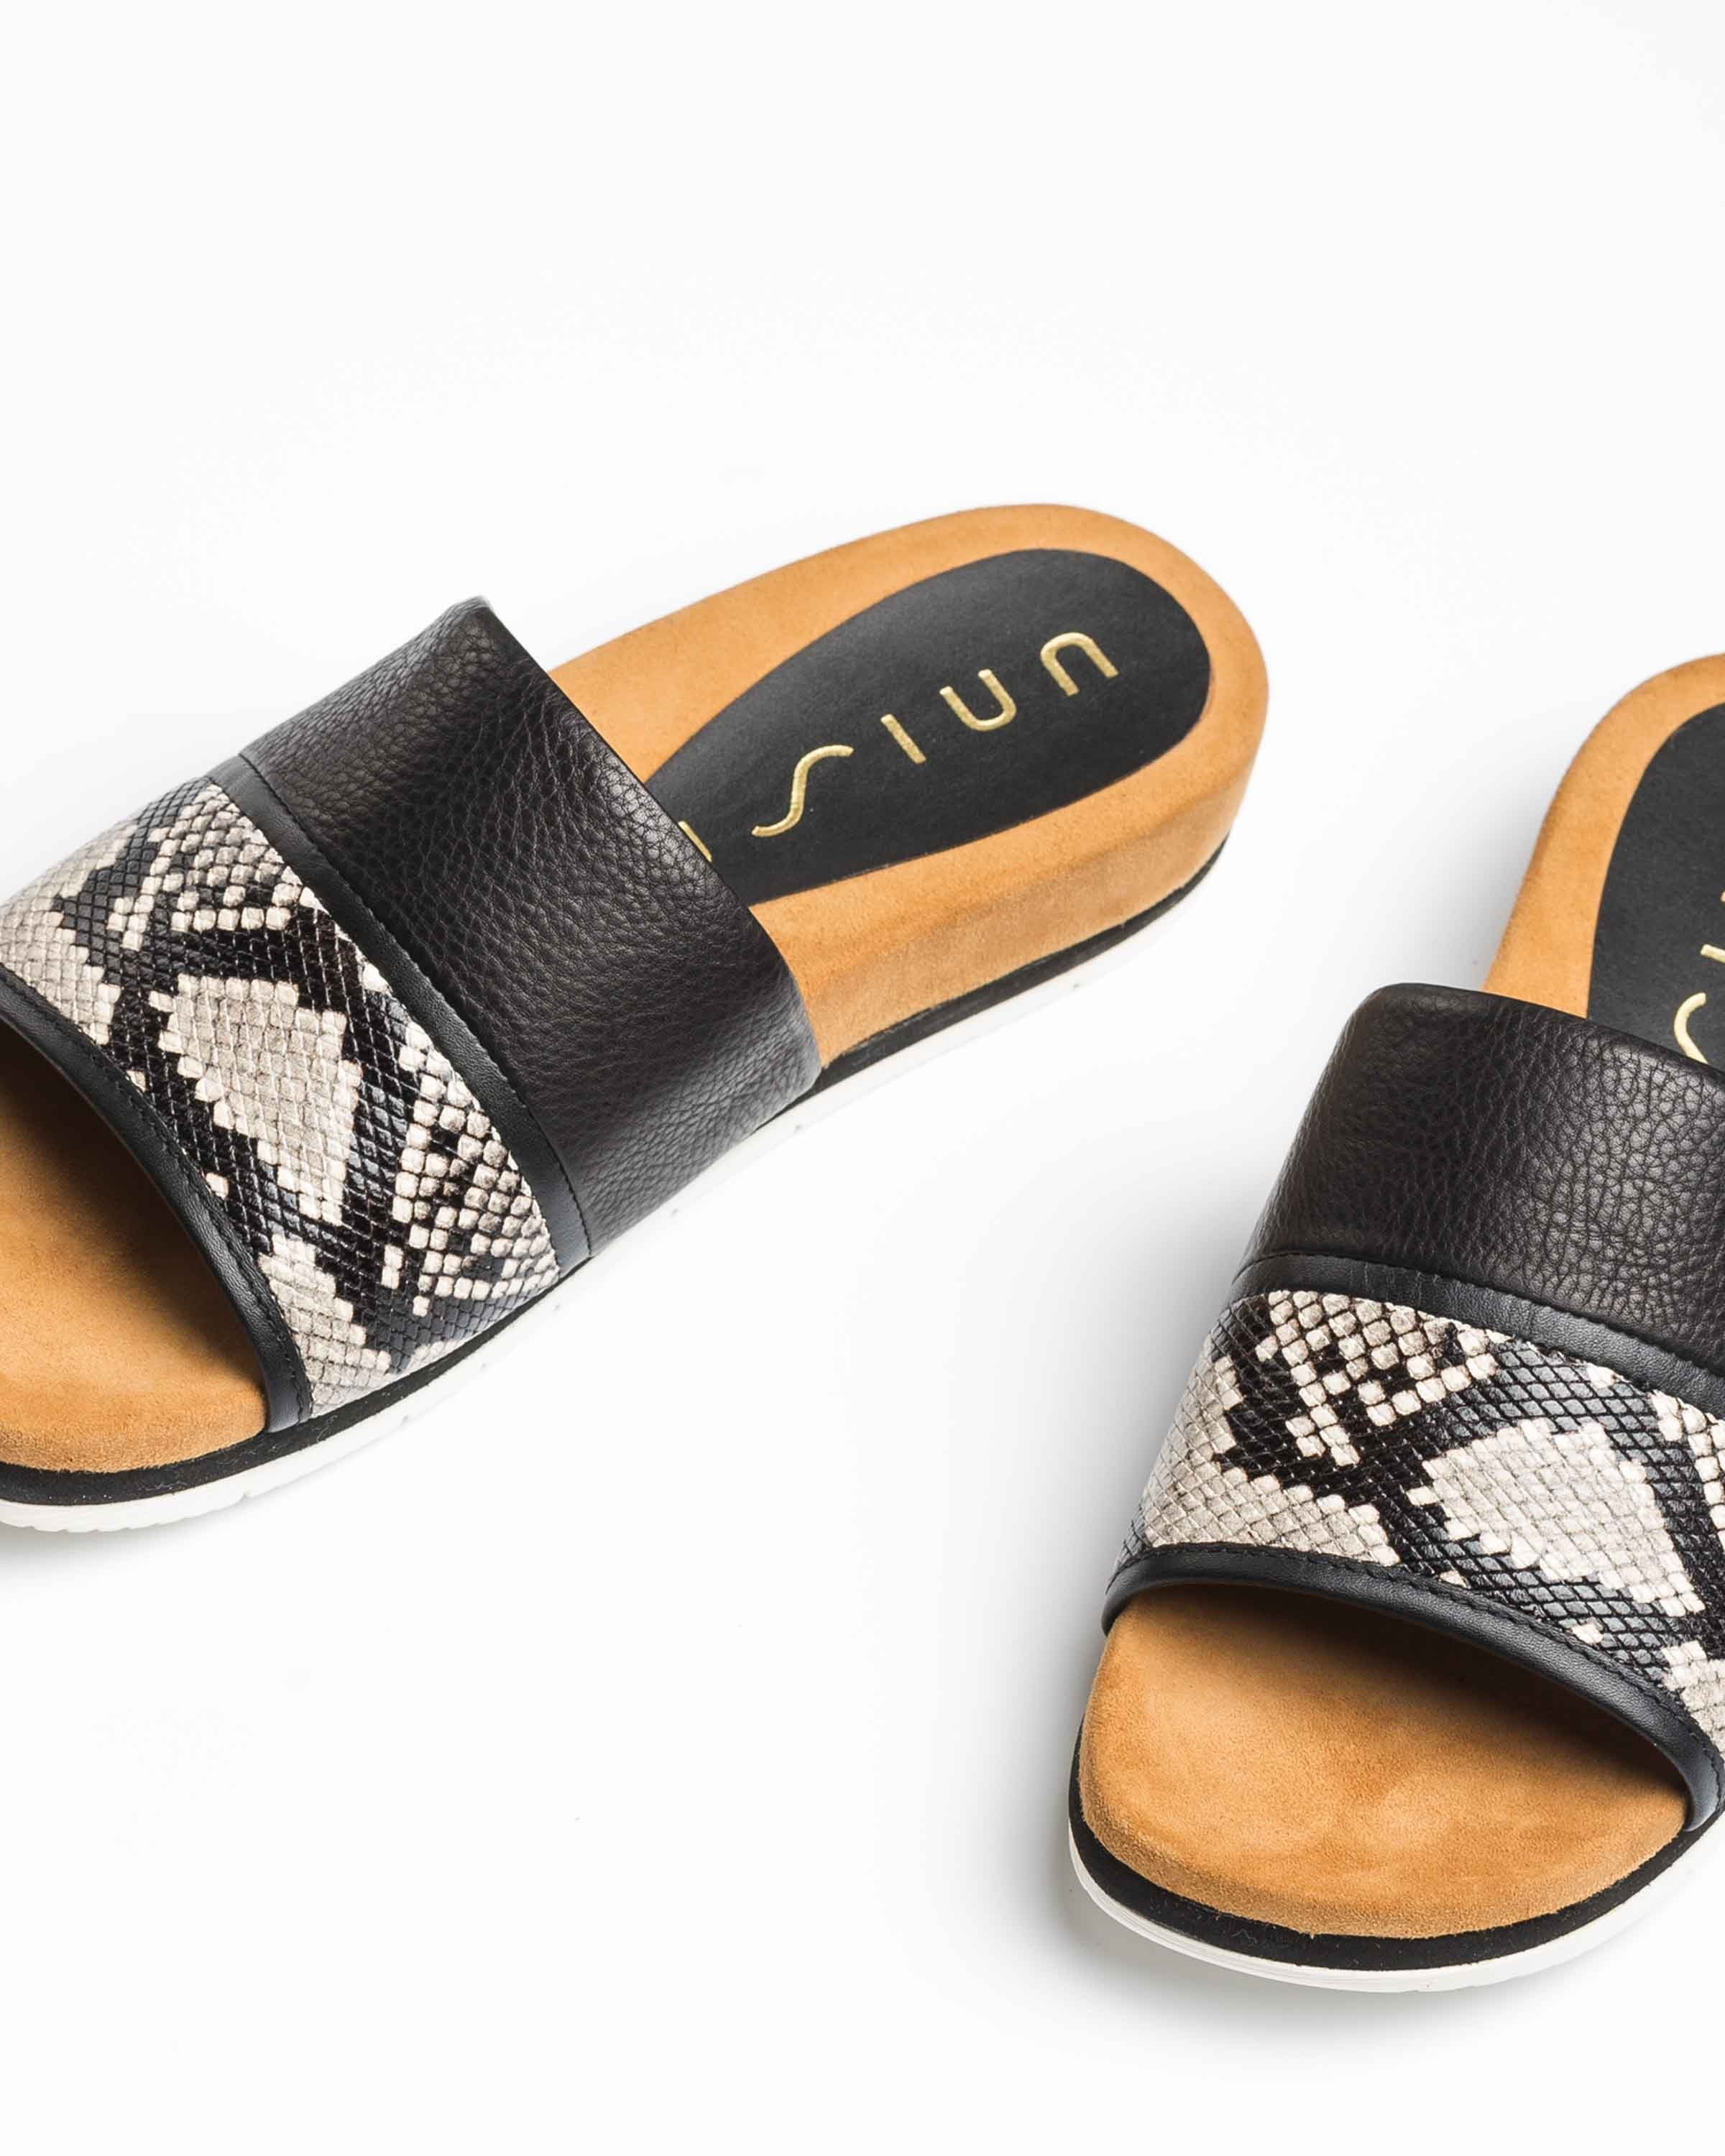 UNISA Flat contrast leather mules CARRION_VIP_STY nacar/blk 2